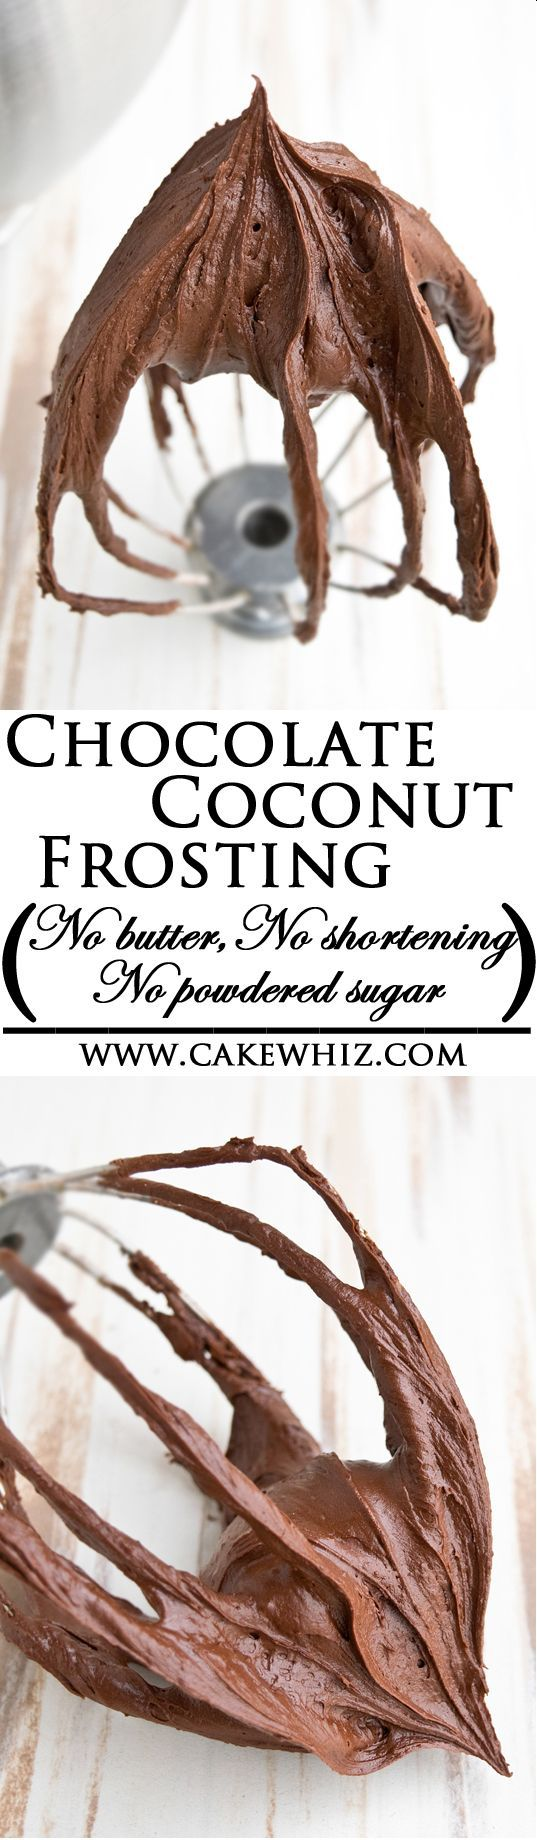 Healthy And Vegan Coconut Cream Chocolate Frosting Made With No Butter No Shortening